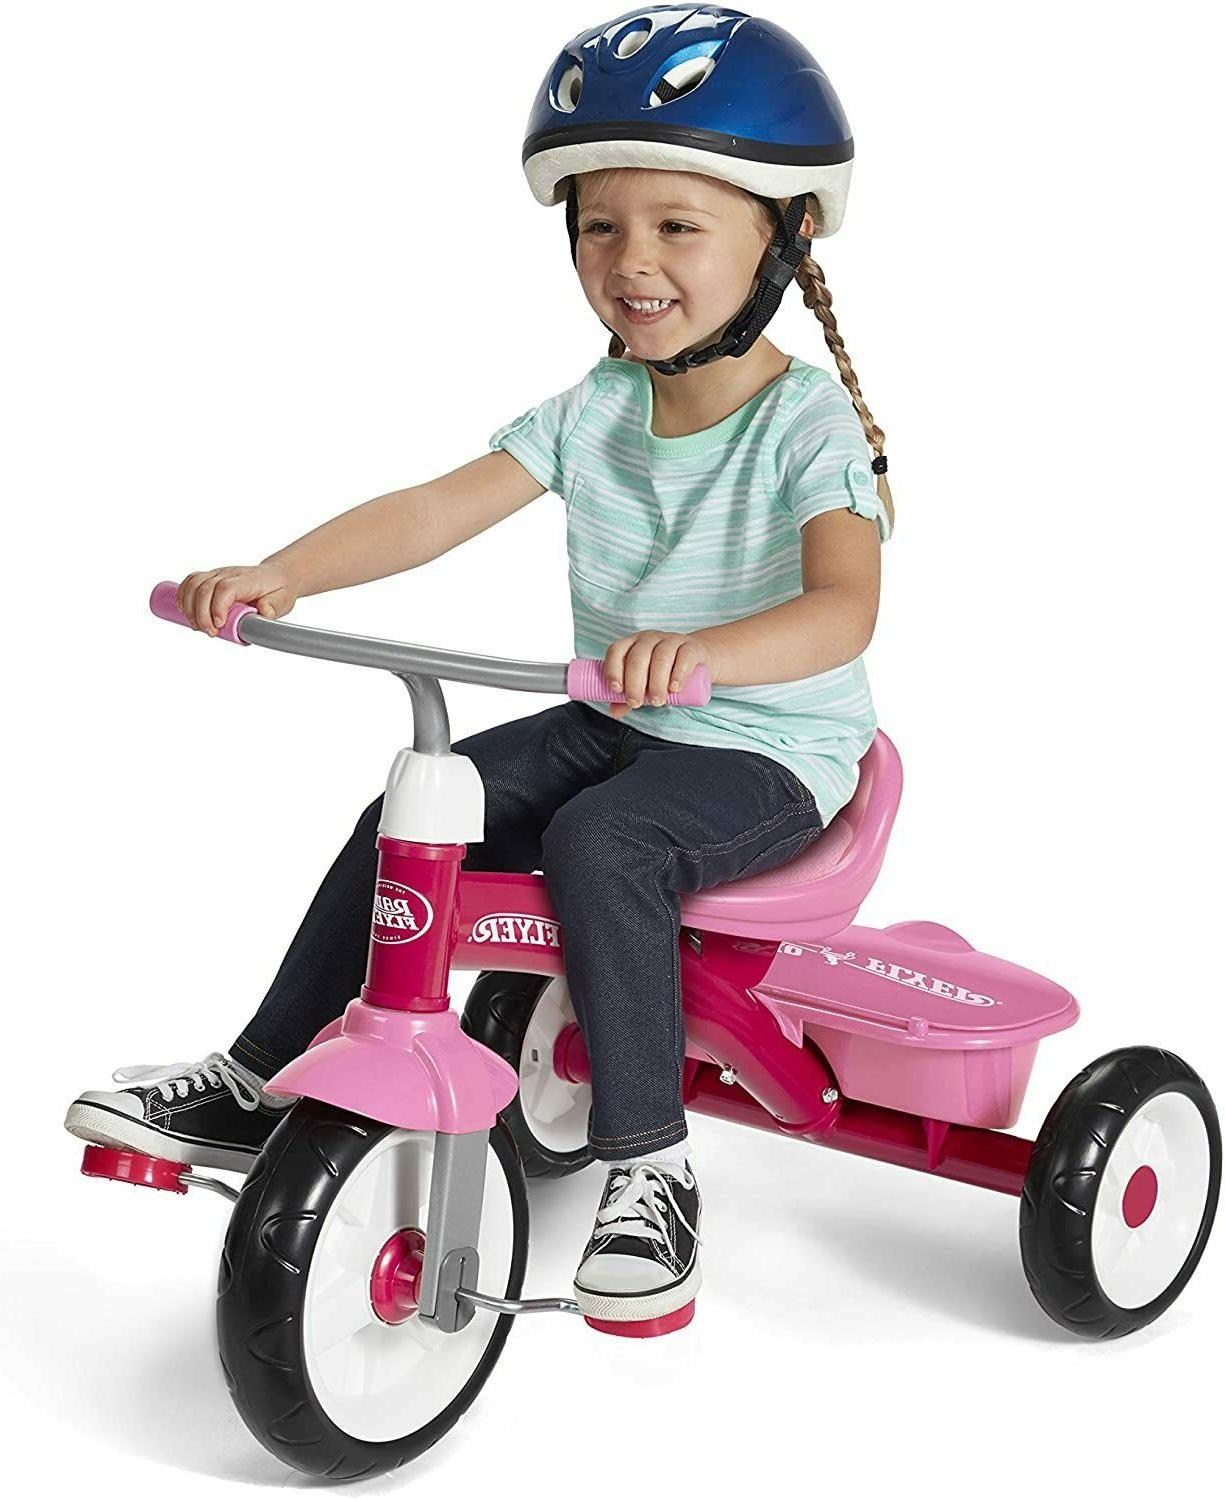 Radio Pink Rider Outdoor 2.5 to years old